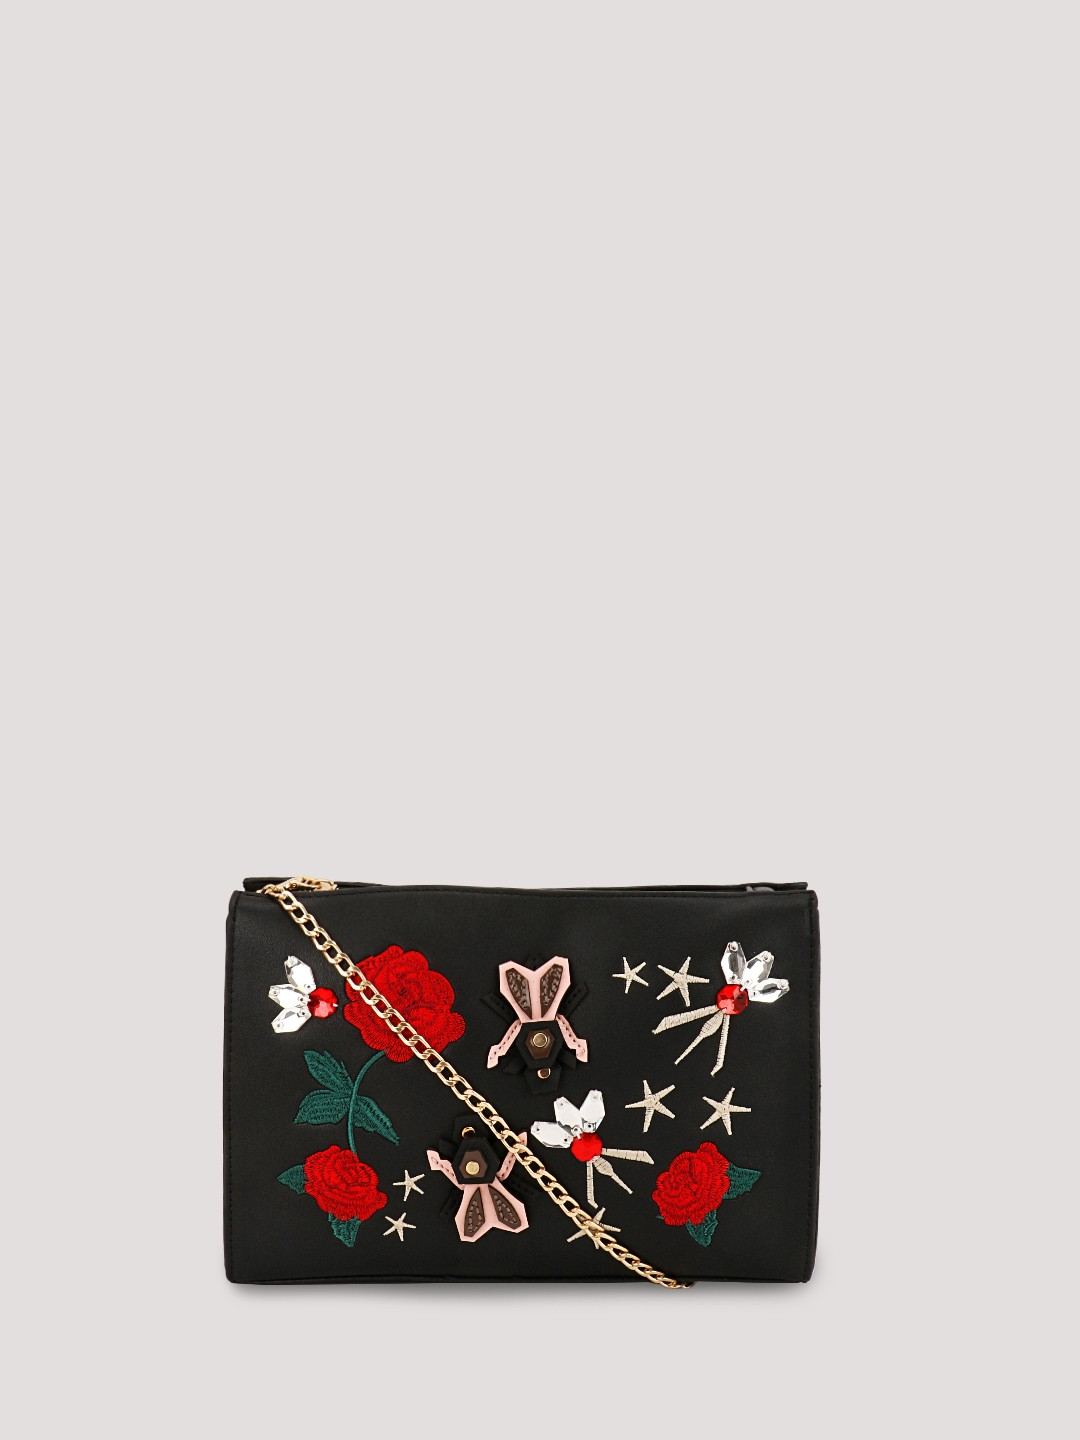 Buy ORIGAMI LILY Embroidered Sling Bag For Women - Women's Black ...